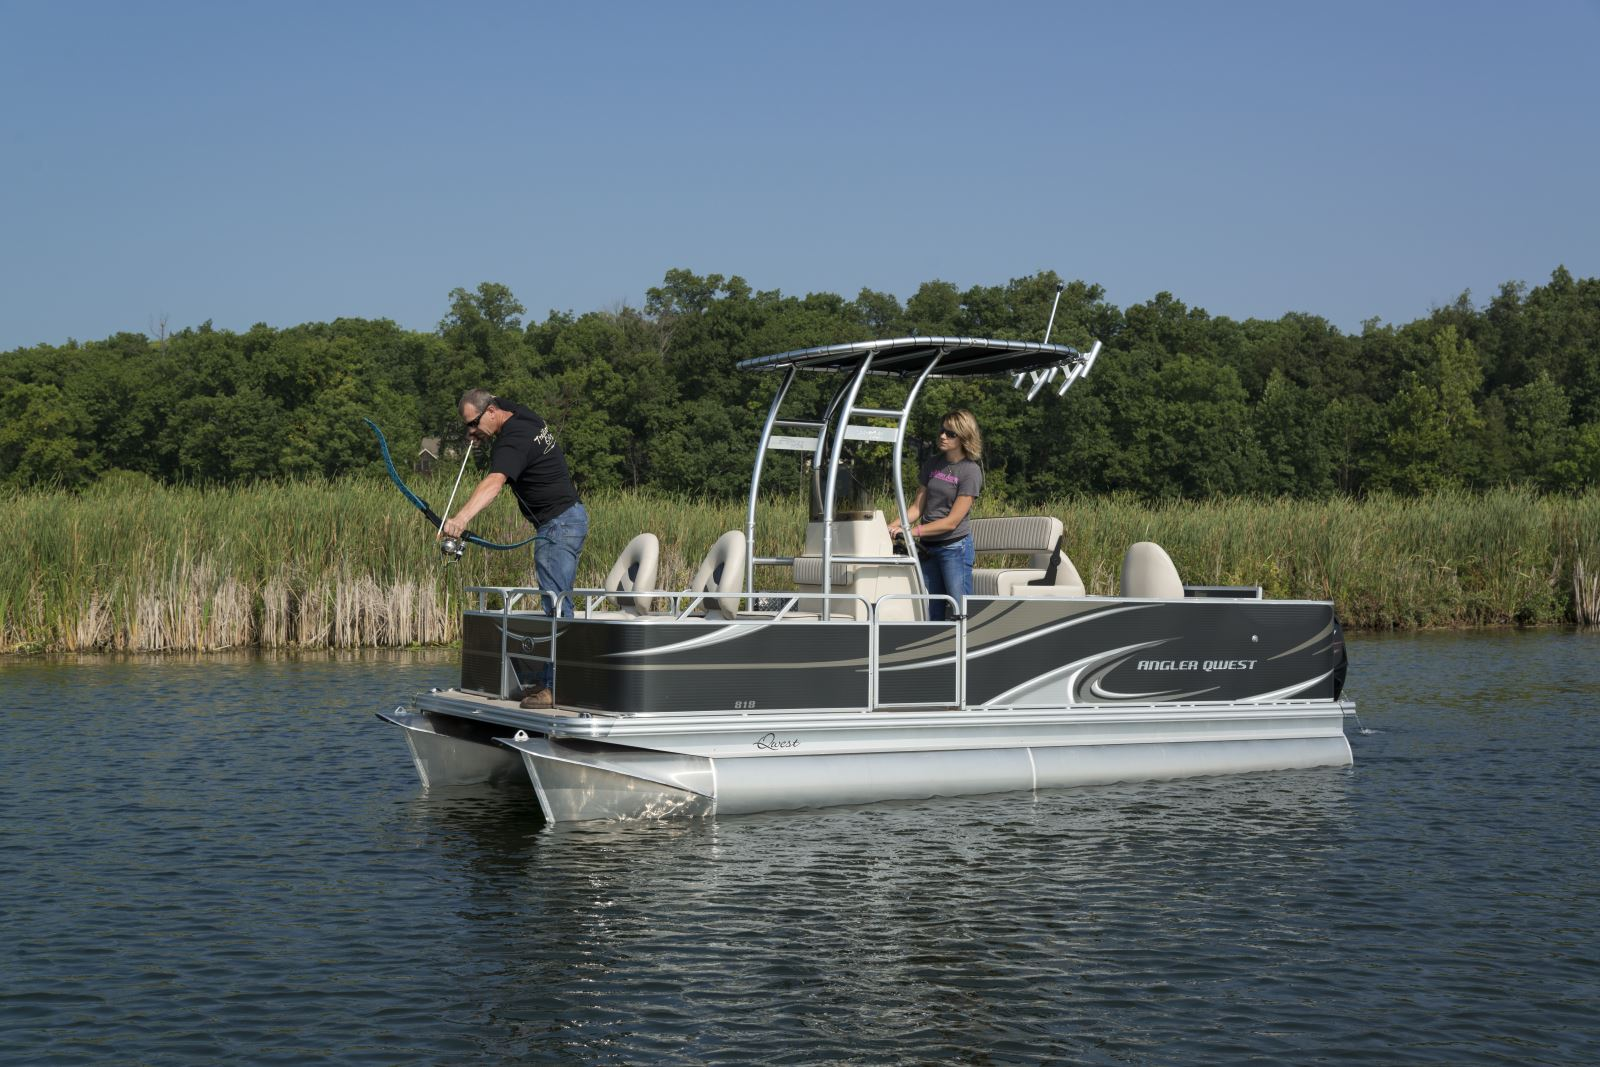 Bowfishing exercising archery angle pontoon deck boat for Bow fishing boats